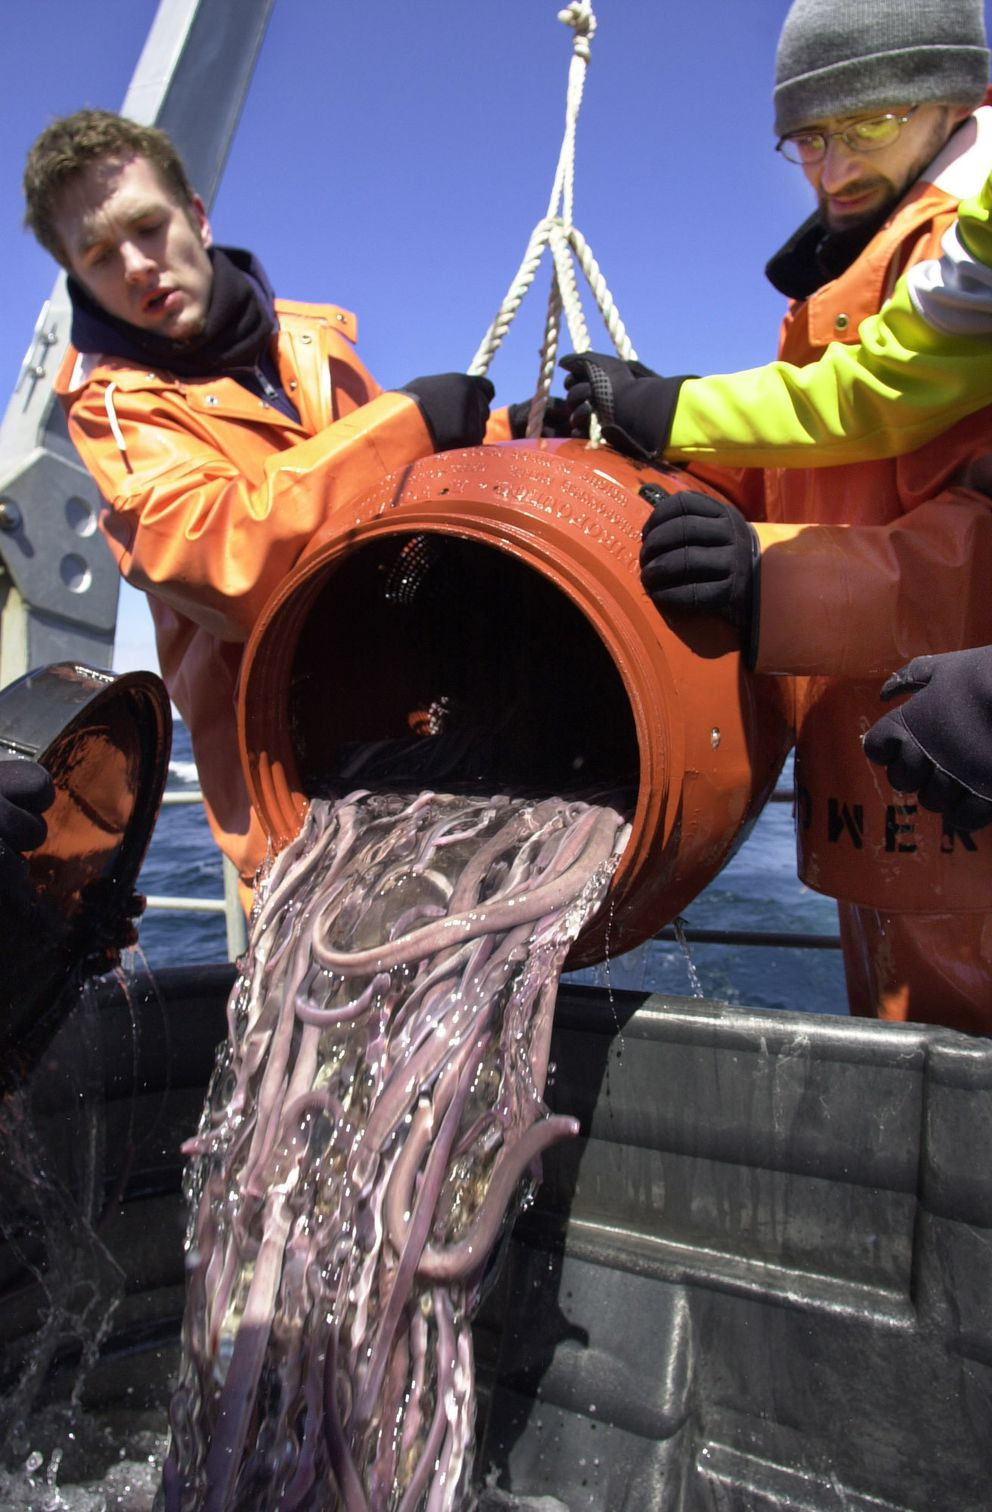 In this April 6, 2002, file photo, biology student Byron Pedler, left, and biochemistry grad student Mihael Freamat pour a barrel of hagfish into a holding tank aboard a research vessel about 20 miles off the coast of Portsmouth, N.H. (AP Photo/Steven Senne, File)